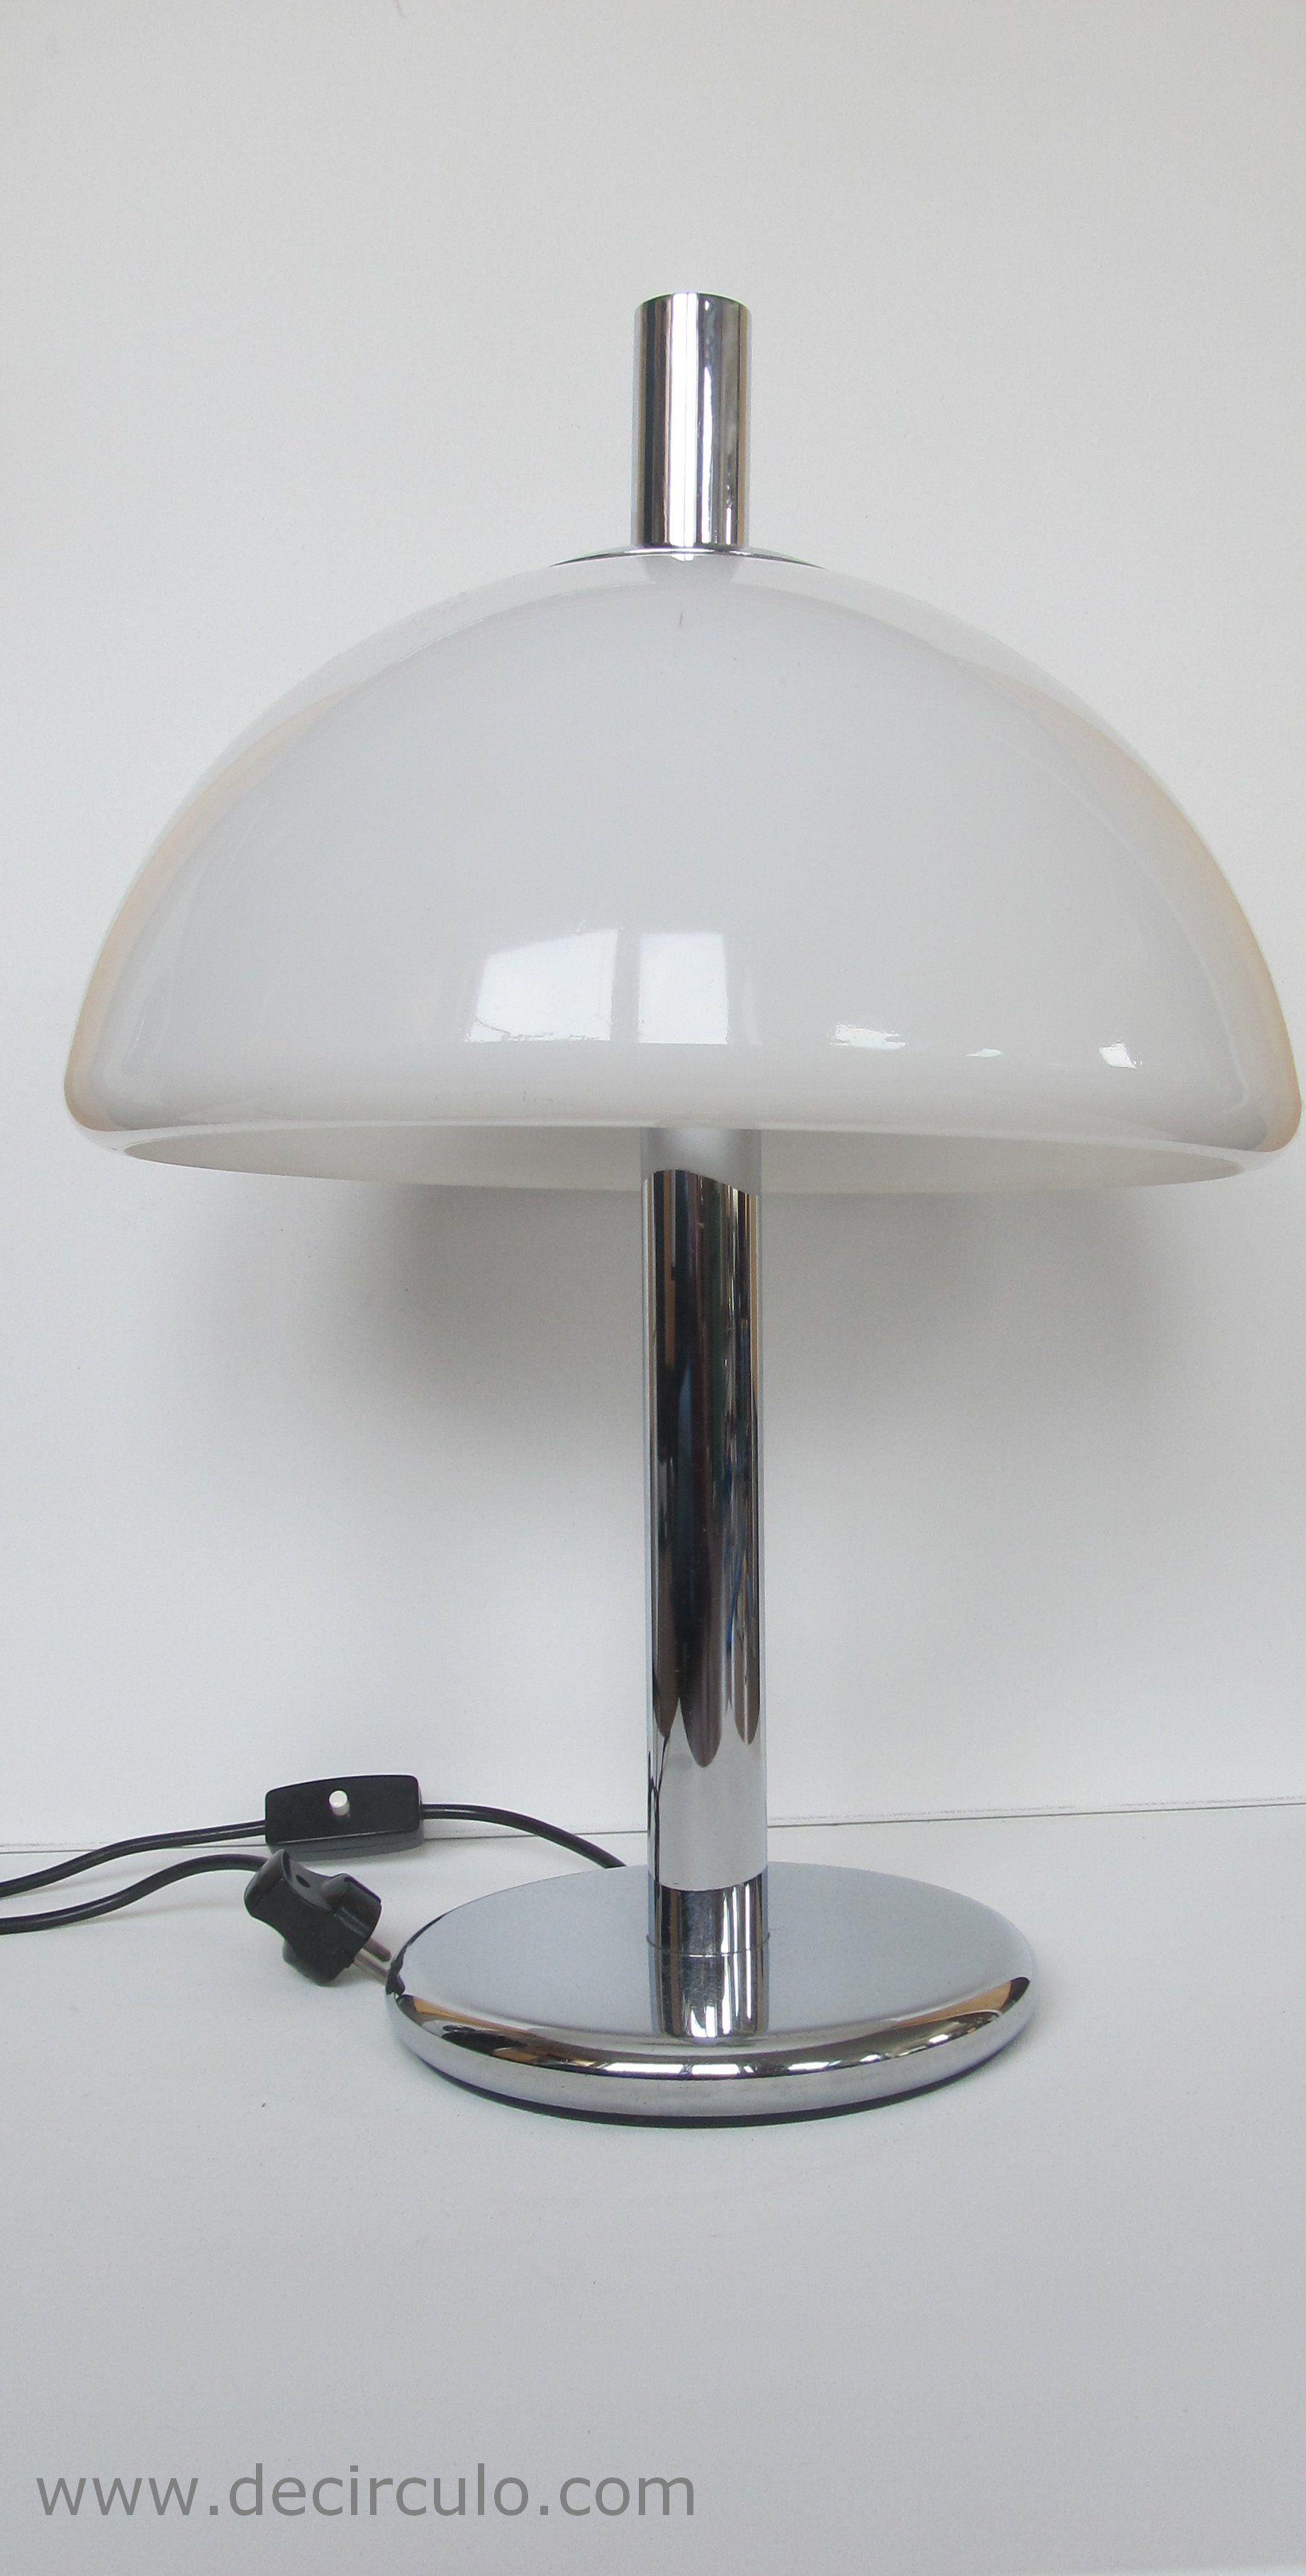 Hillebrand Bauhaus Table Lamp White